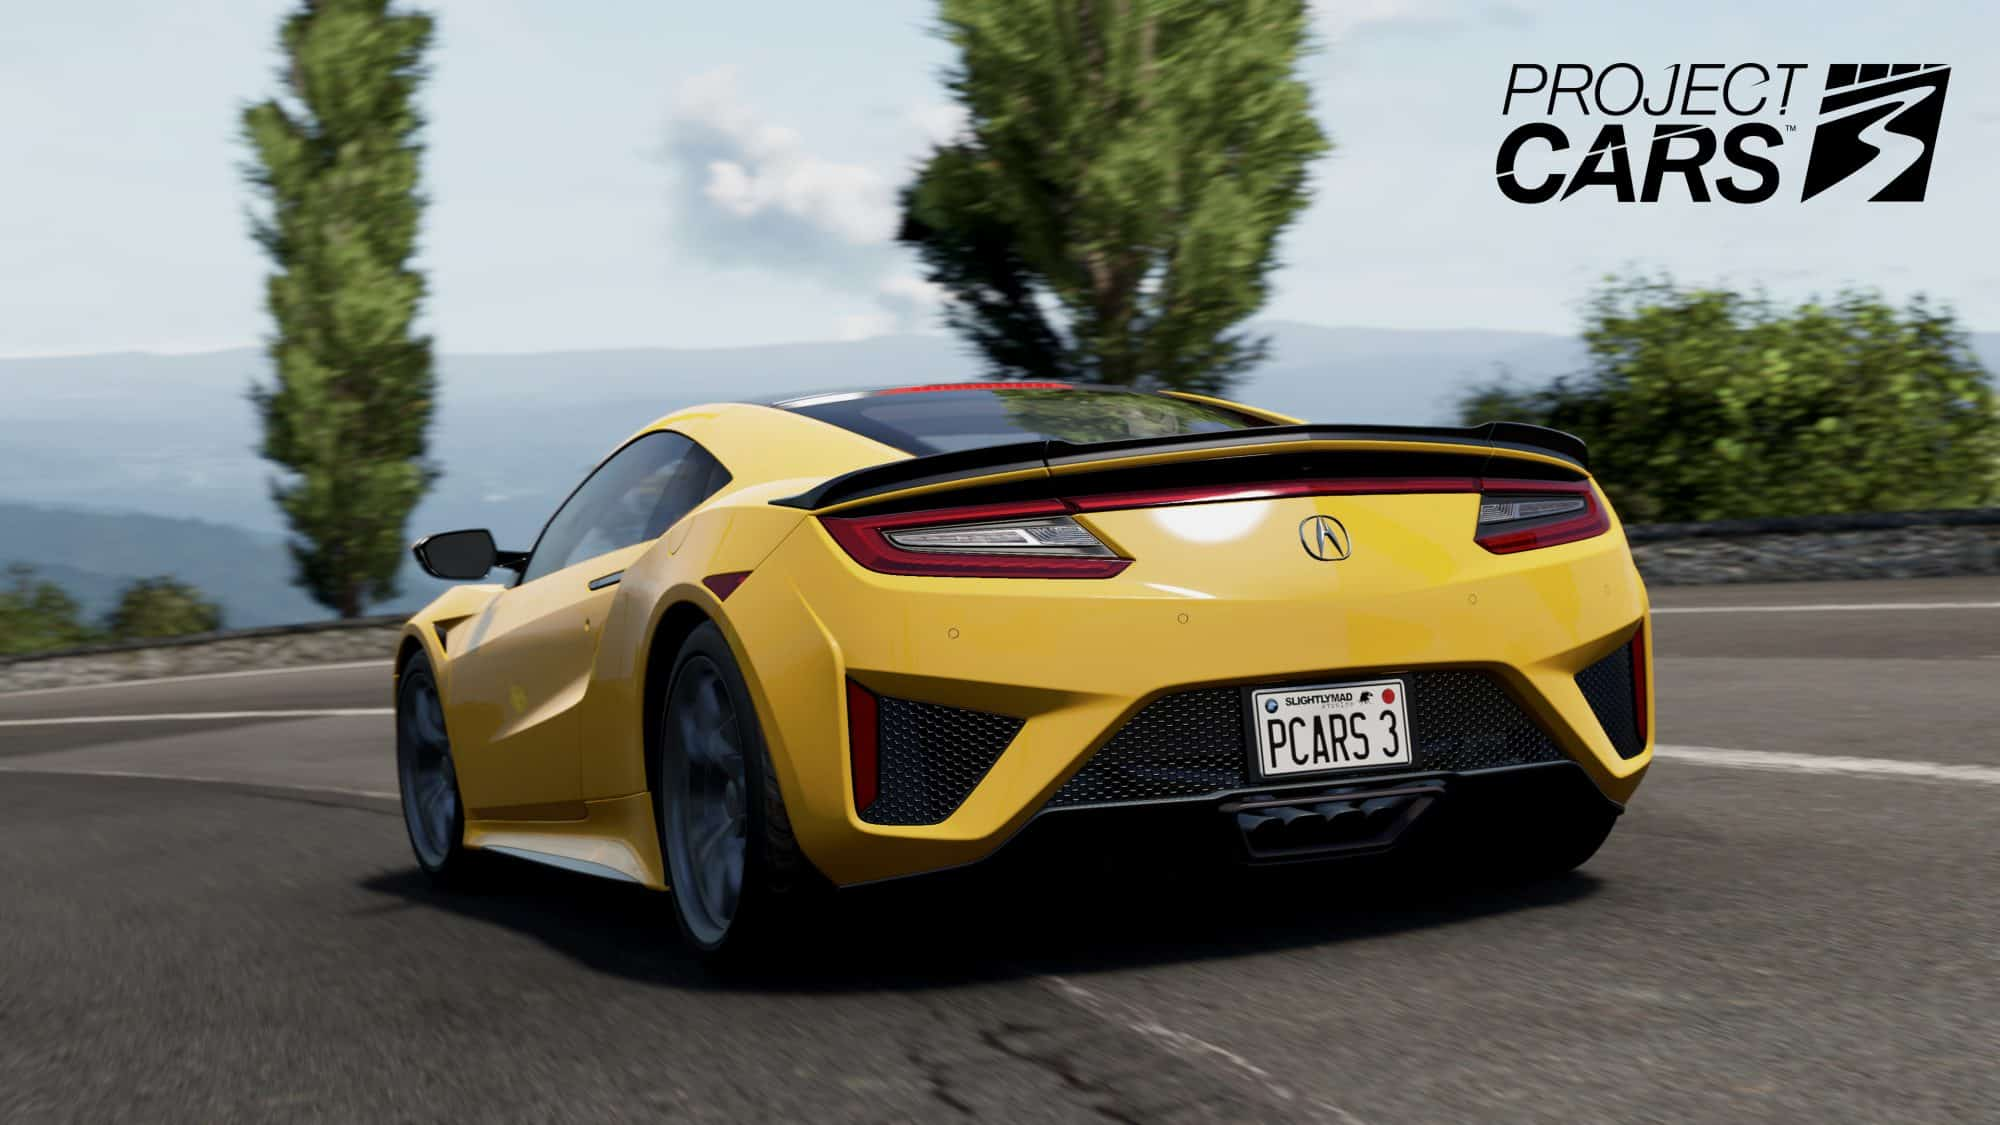 Project Cars 3 already has release date | AxenEssential